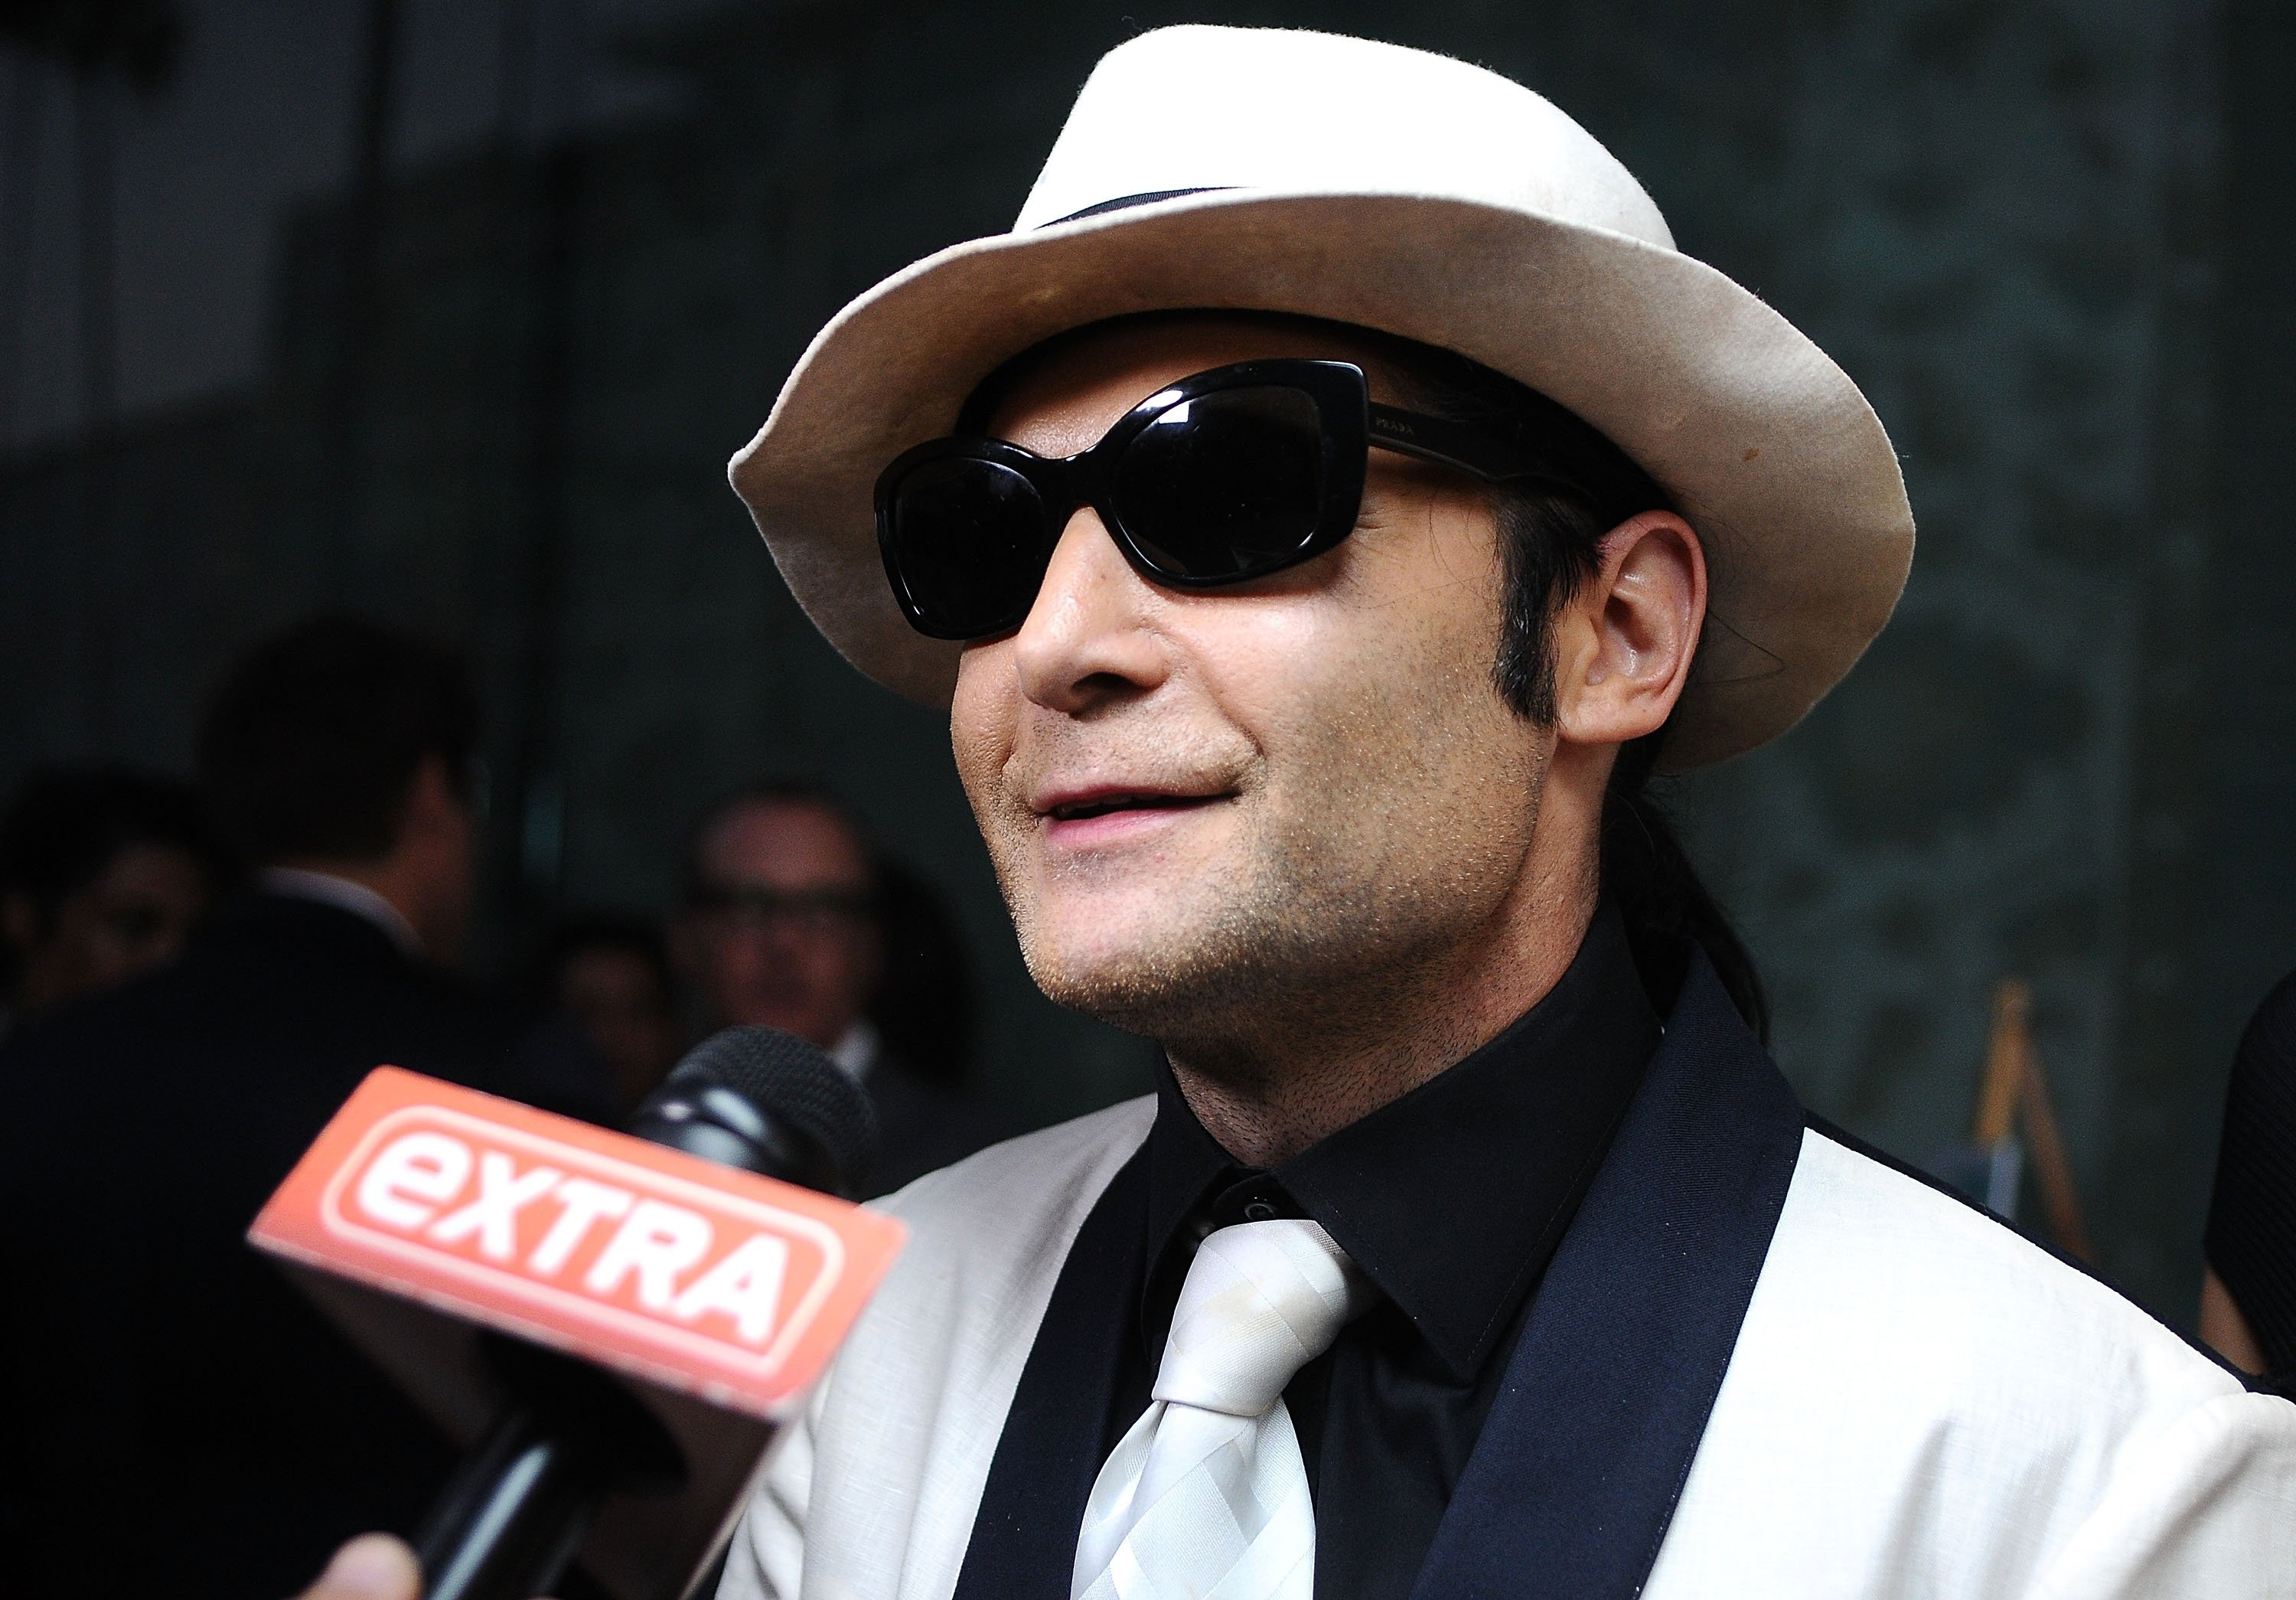 **This image is for use with this specific article only**  As Hollywood grapples with accusations of sexual harassment and abuse, actor Corey Feldman says he's living in fear as he tries to expose pedophilia in the industry.